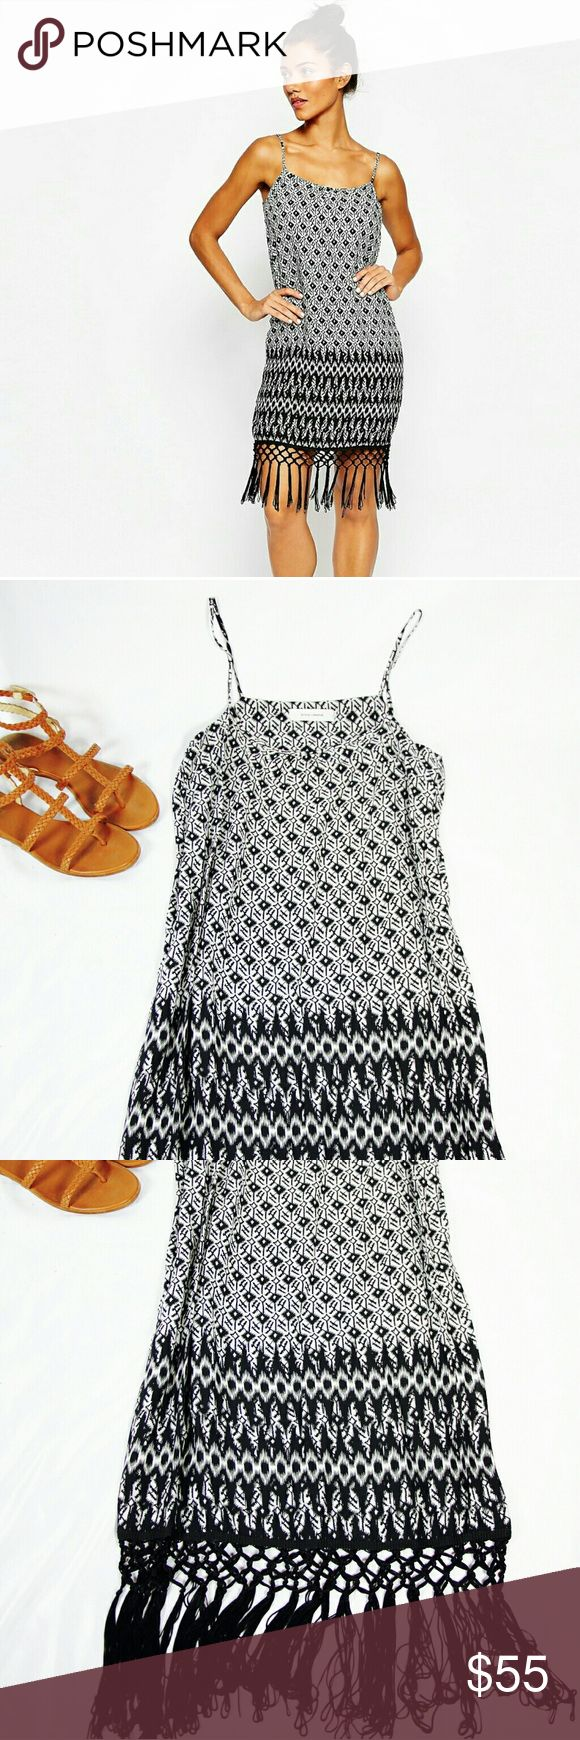 [Style London] Printed Festival Dress  Style London printed festival dress in black and white with a fun fringe hem. Comfortable and stylish! Perfect dress for a festival or a trip. Worn once and in great condition. Size XS. Style London Dresses